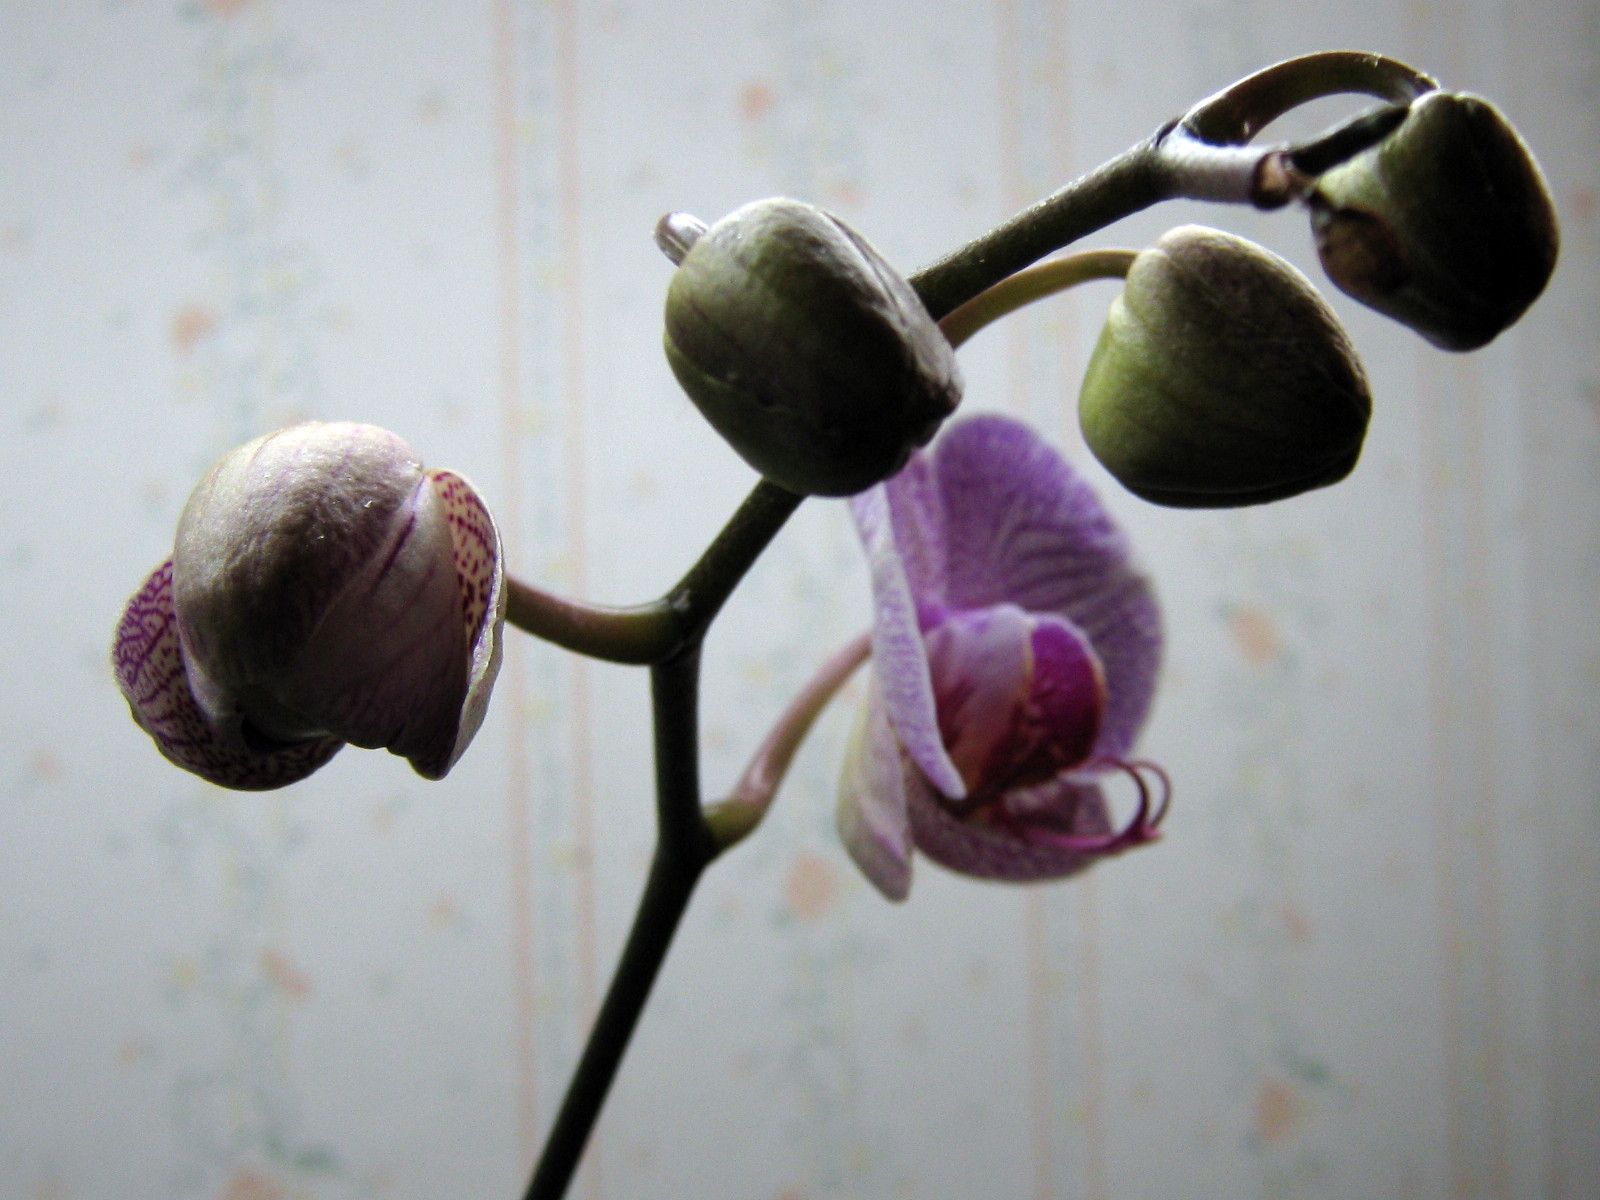 More orchids to come